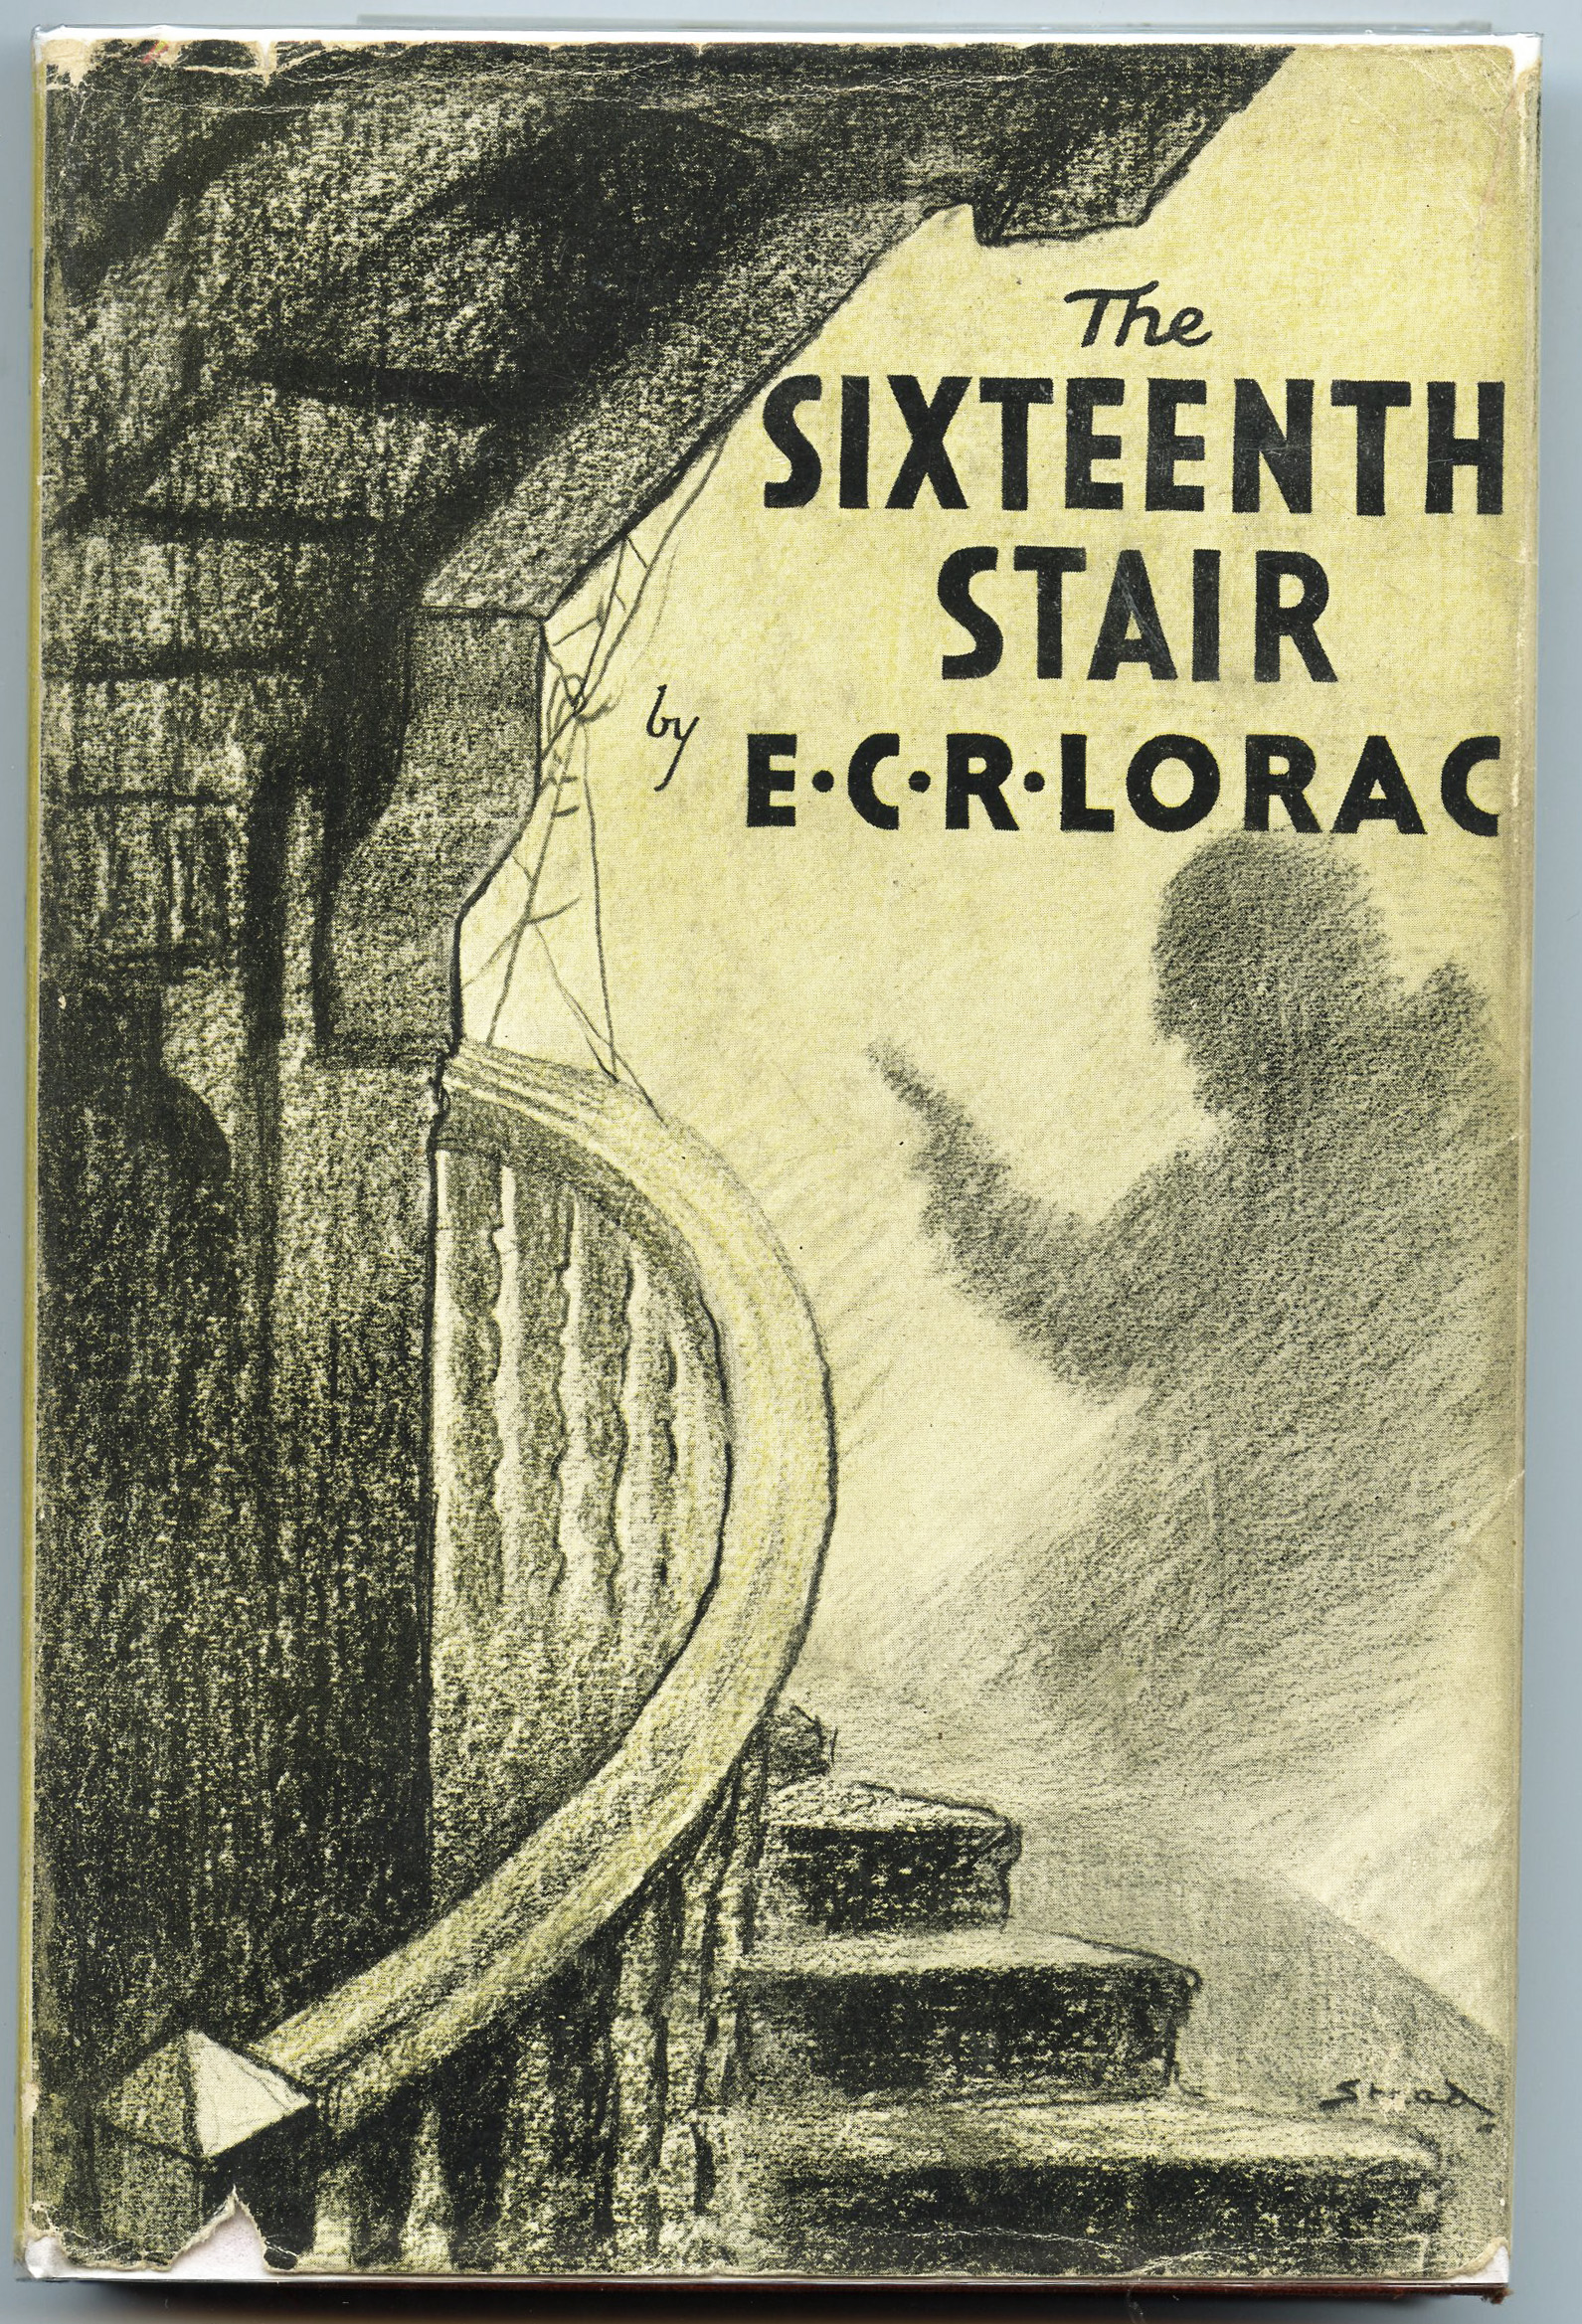 The Sixteenth Stair